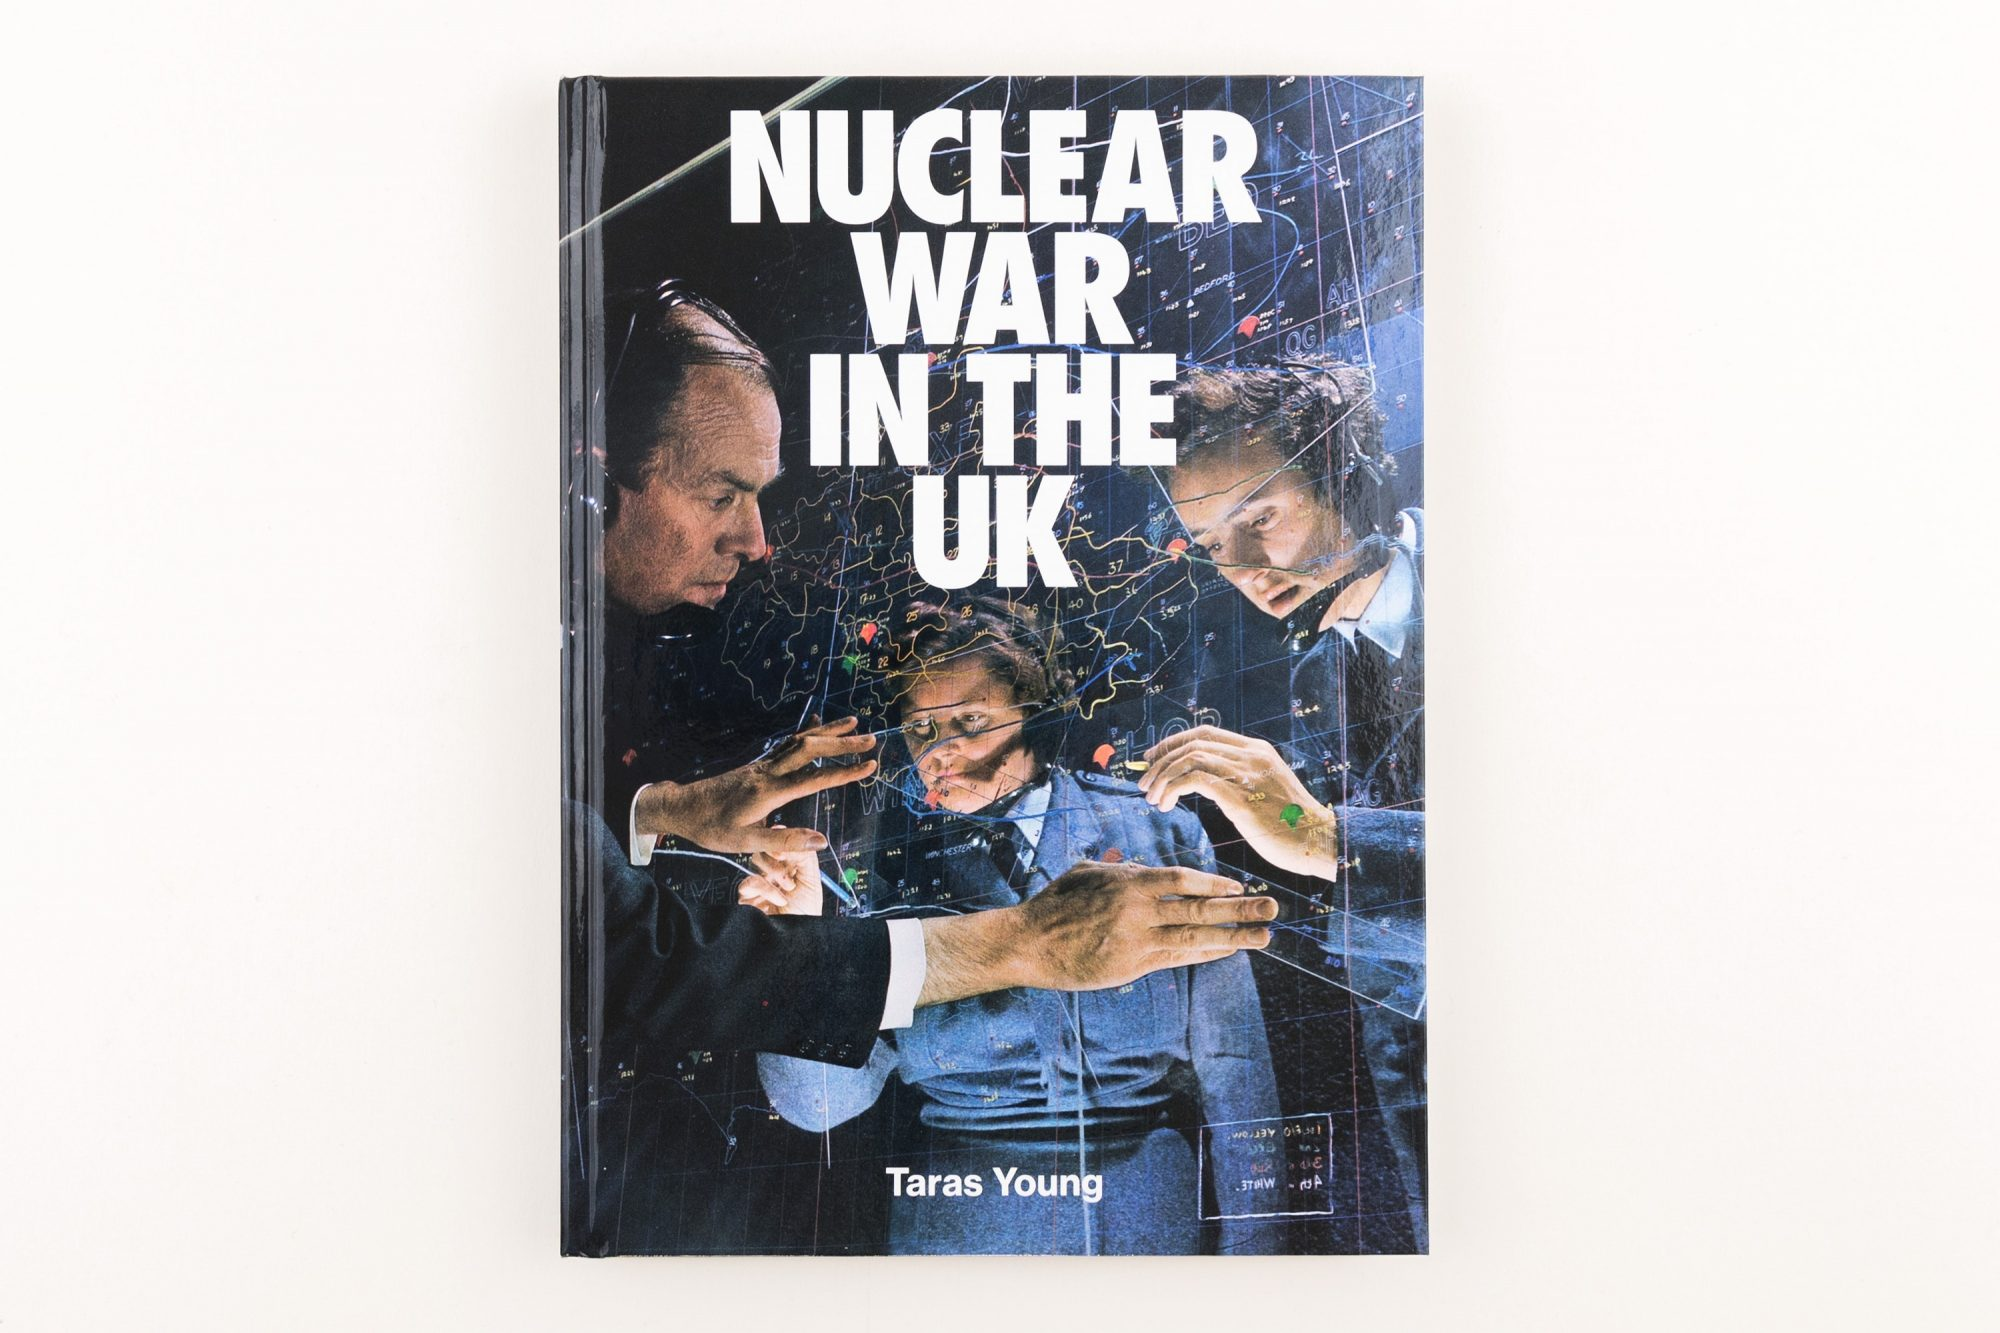 Nuclear Cover Photo